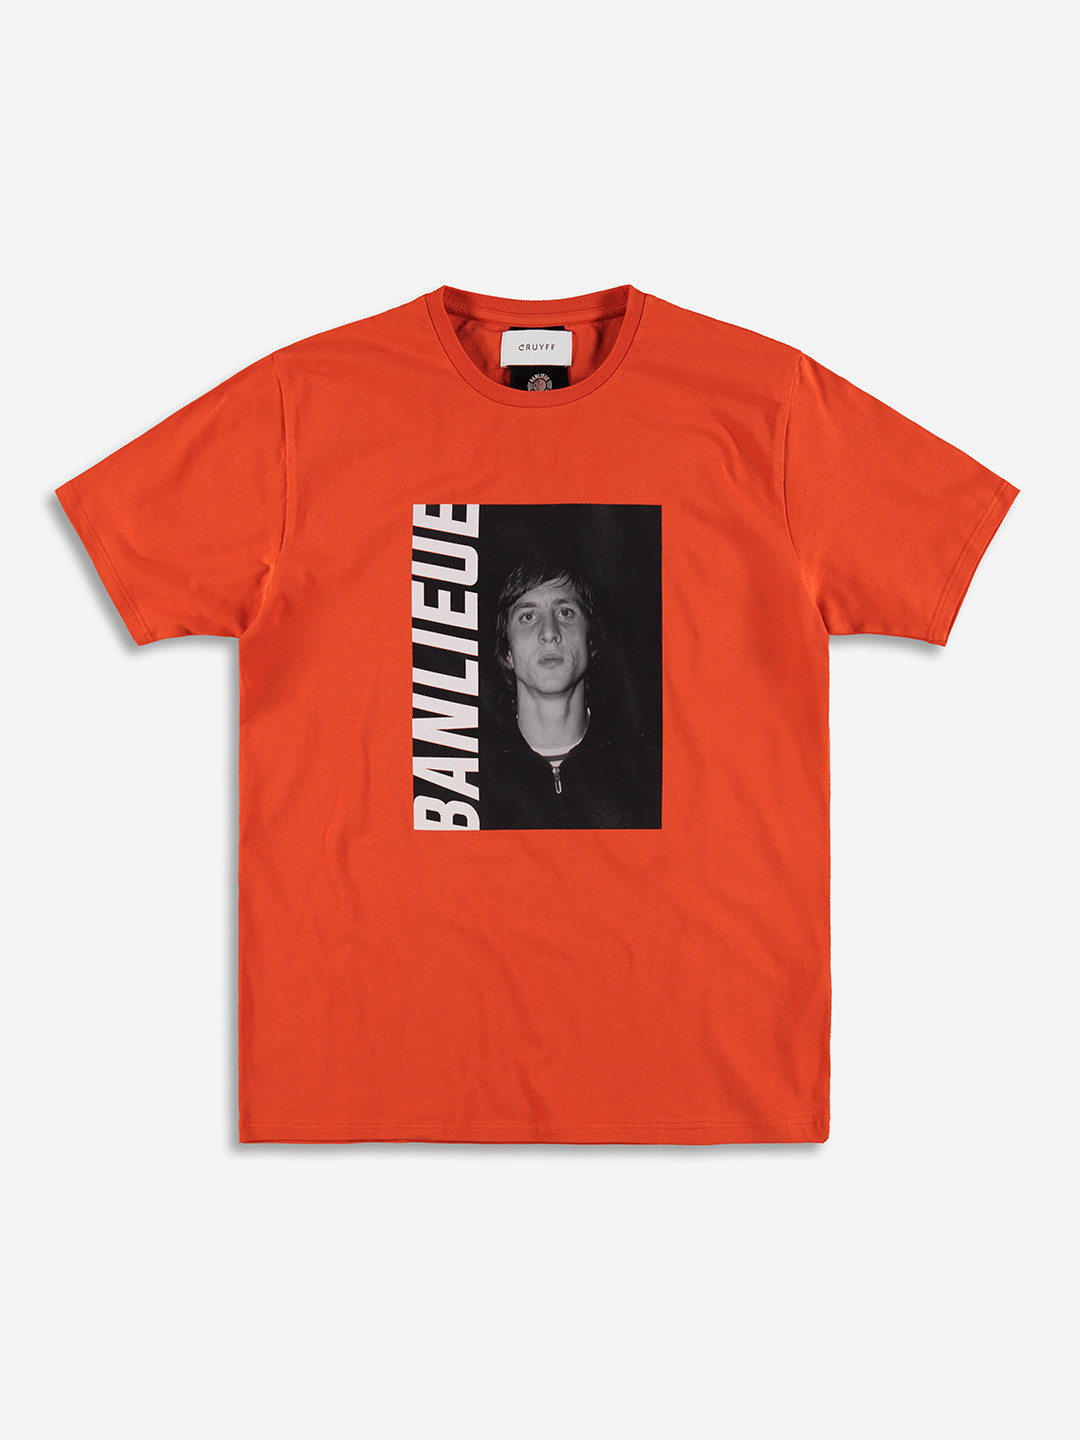 Banlieue x Cruyff T-shirt Orange